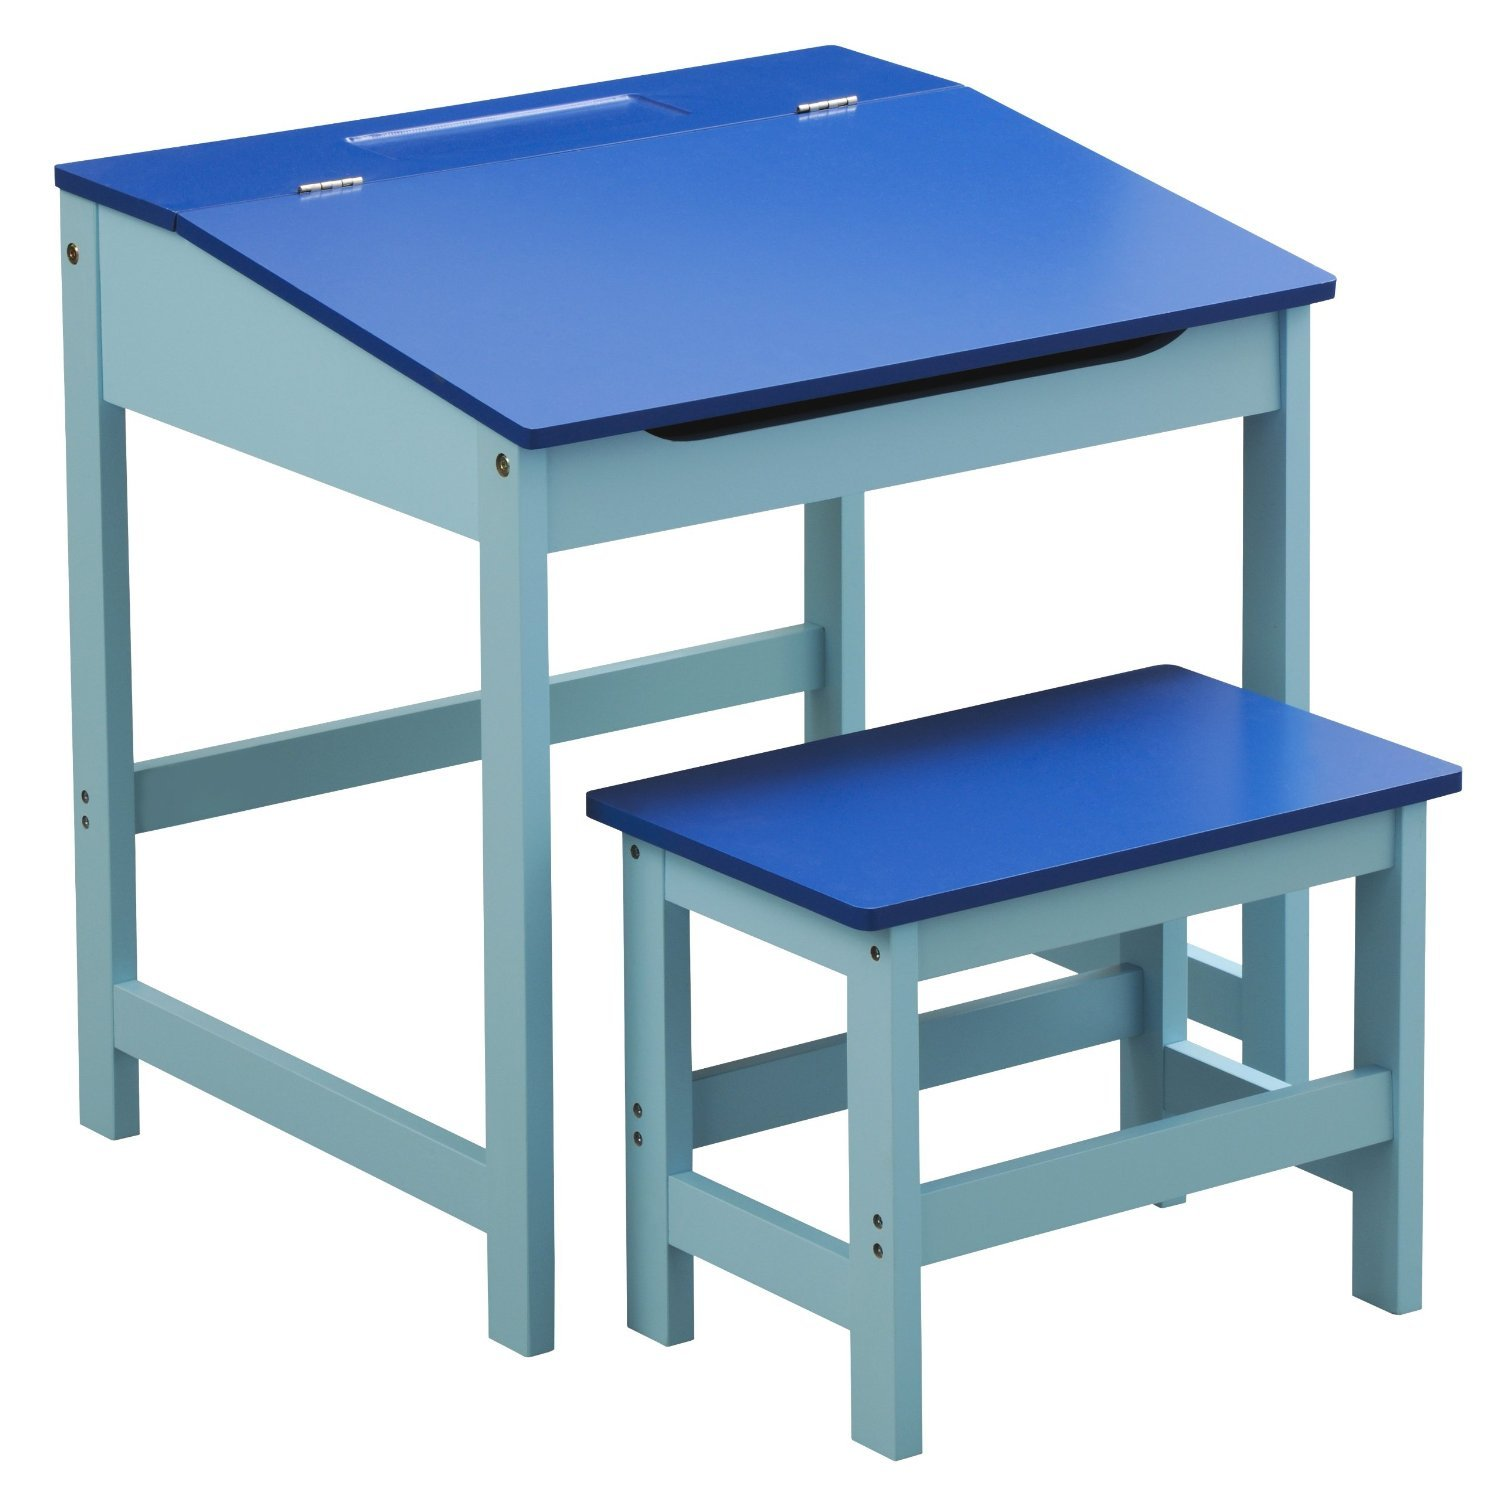 PR KIDS/CHILDRENS PLAY DESK AND STOOL SET IN BLUE Apollo Furnishings